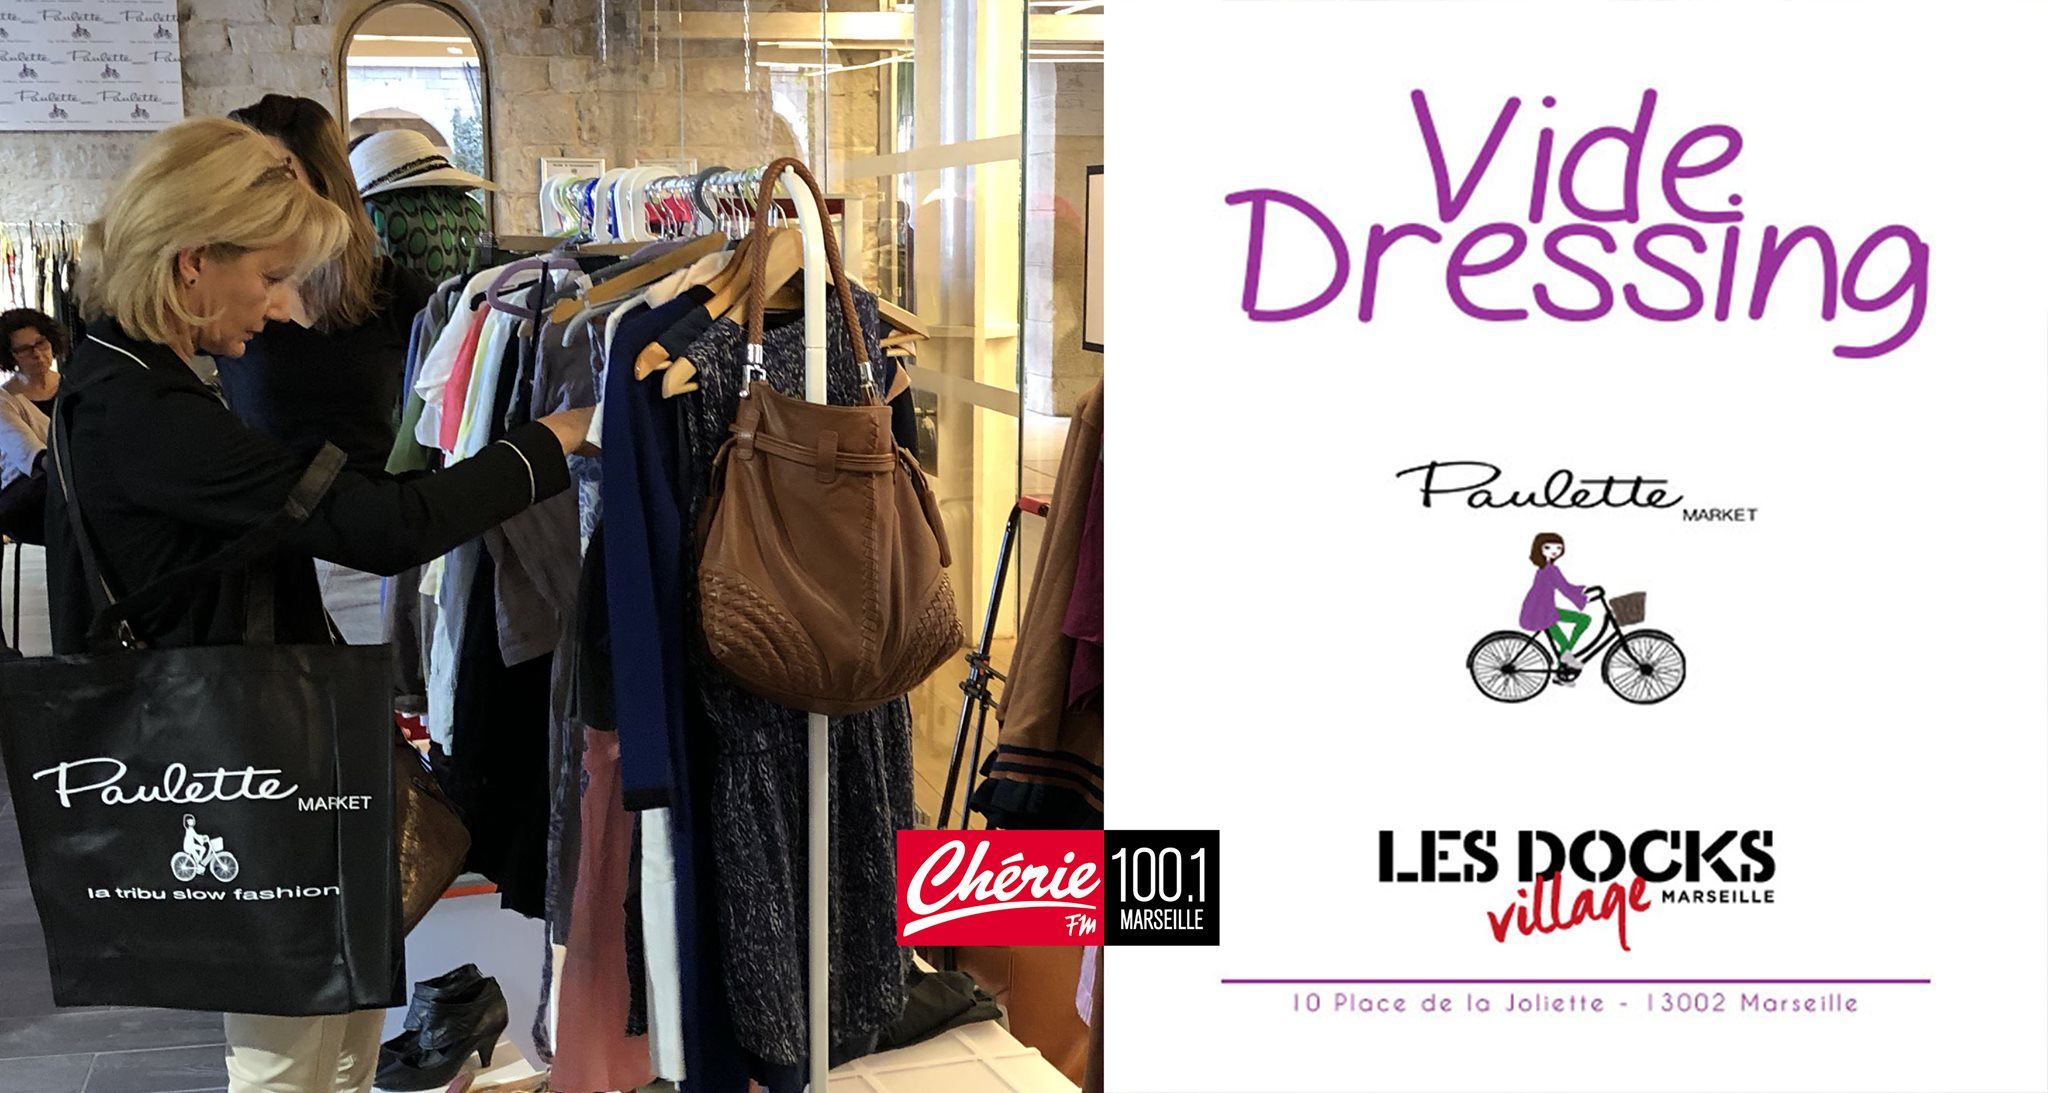 https://the-place-to-be.fr/wp-content/uploads/2020/03/vide-dressing-paulette-market-marseille-les-docks-village-13002-mai-2020.jpg